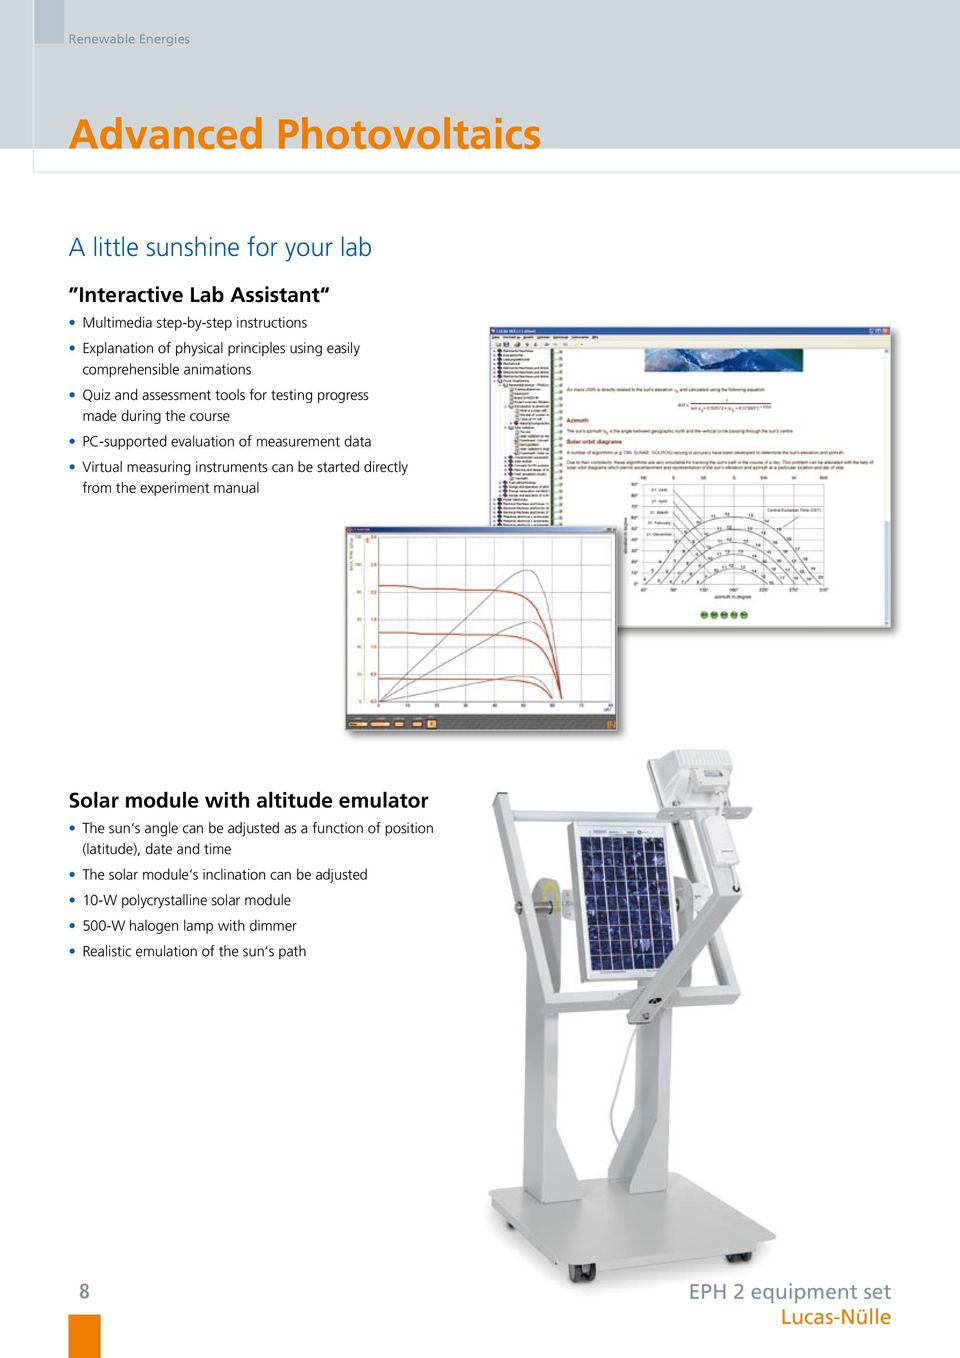 can be started directly from the experiment manual Solar module with altitude emulator The sun s angle can be adjusted as a function of position (latitude), date and